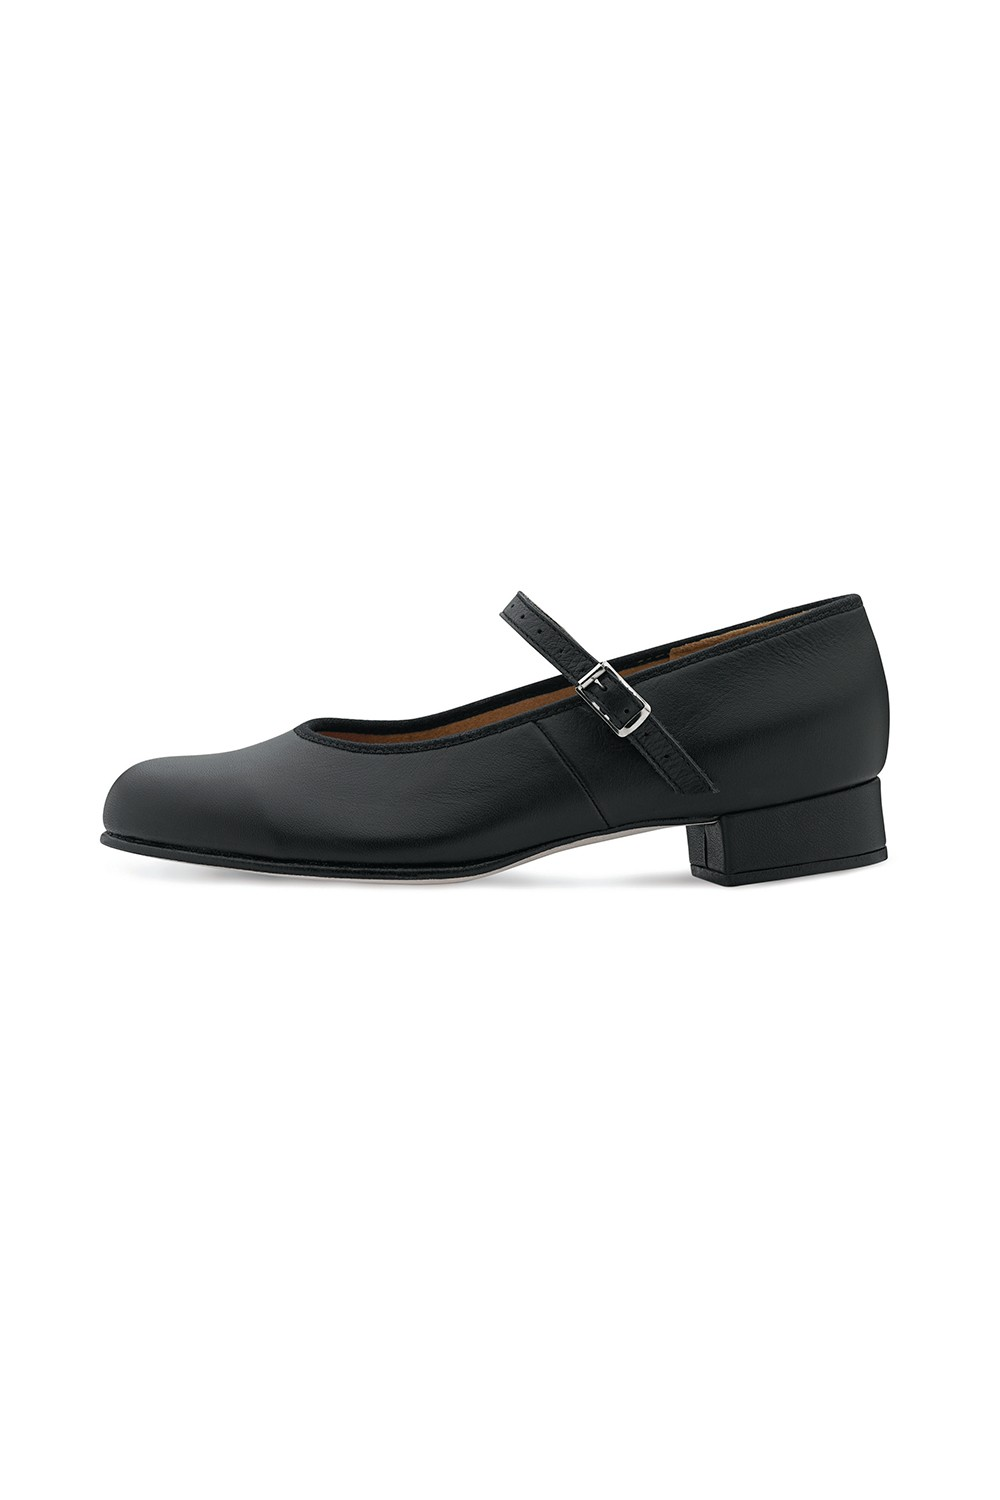 Rhythm Women's Tap Shoes